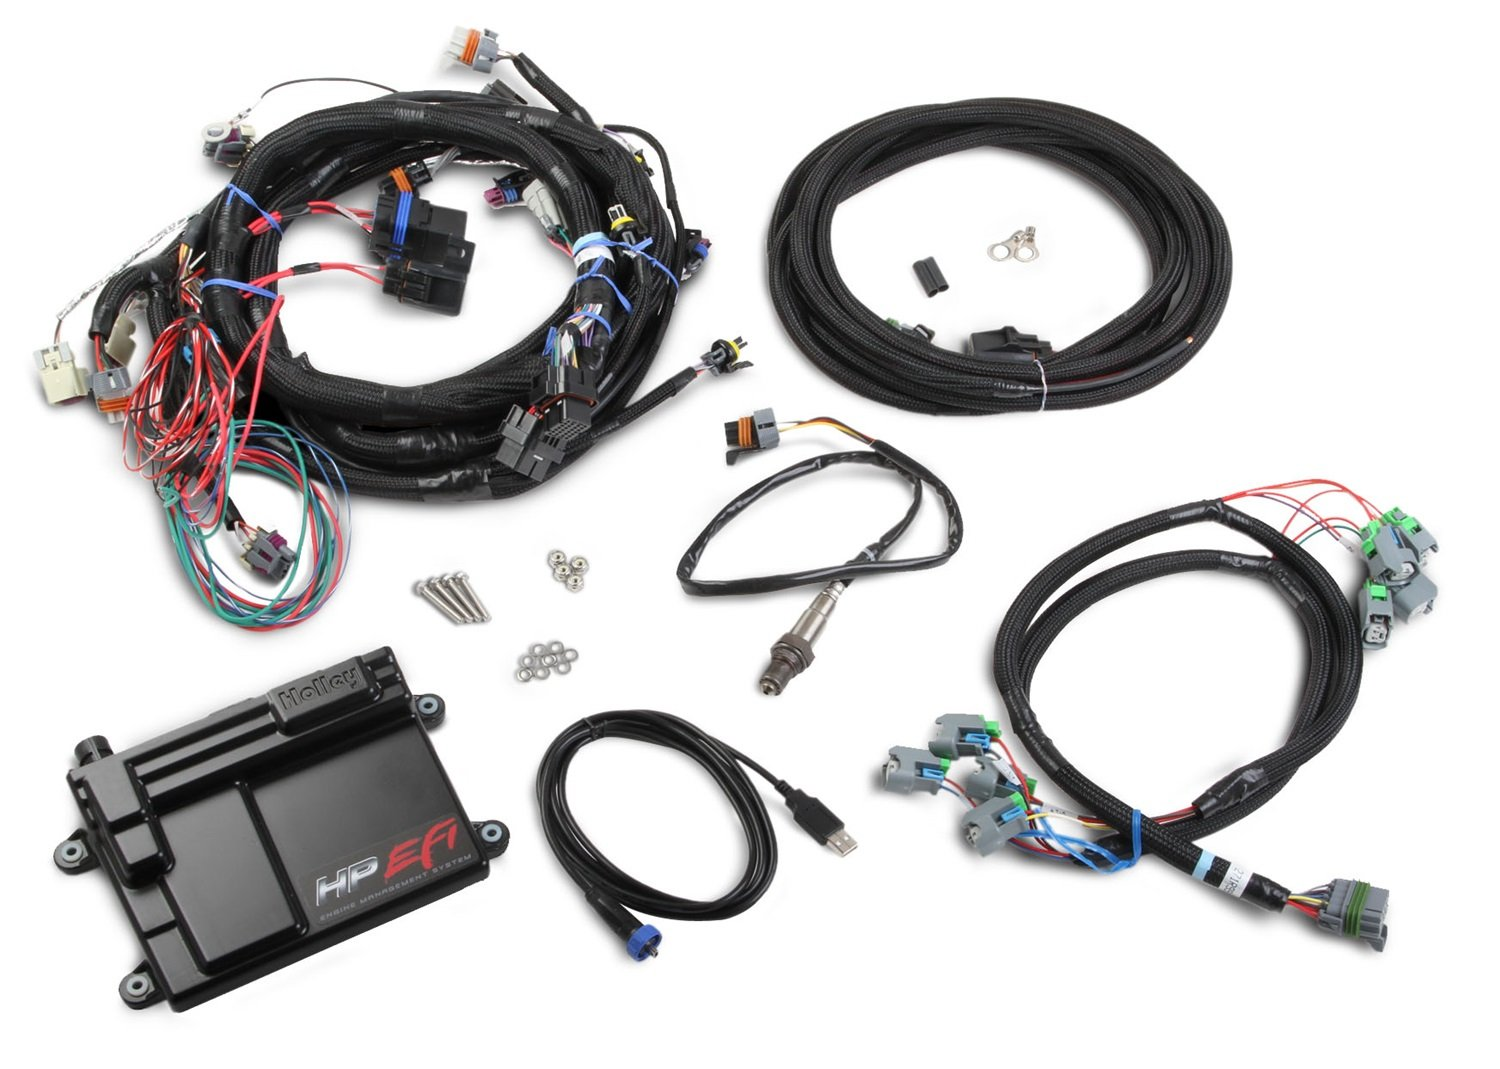 71XAm%2B c gL._SL1500_ amazon com holley 550 603 hp efi, ecu and harness kit automotive ecu wiring harness for 1999 mazda 626 at mifinder.co